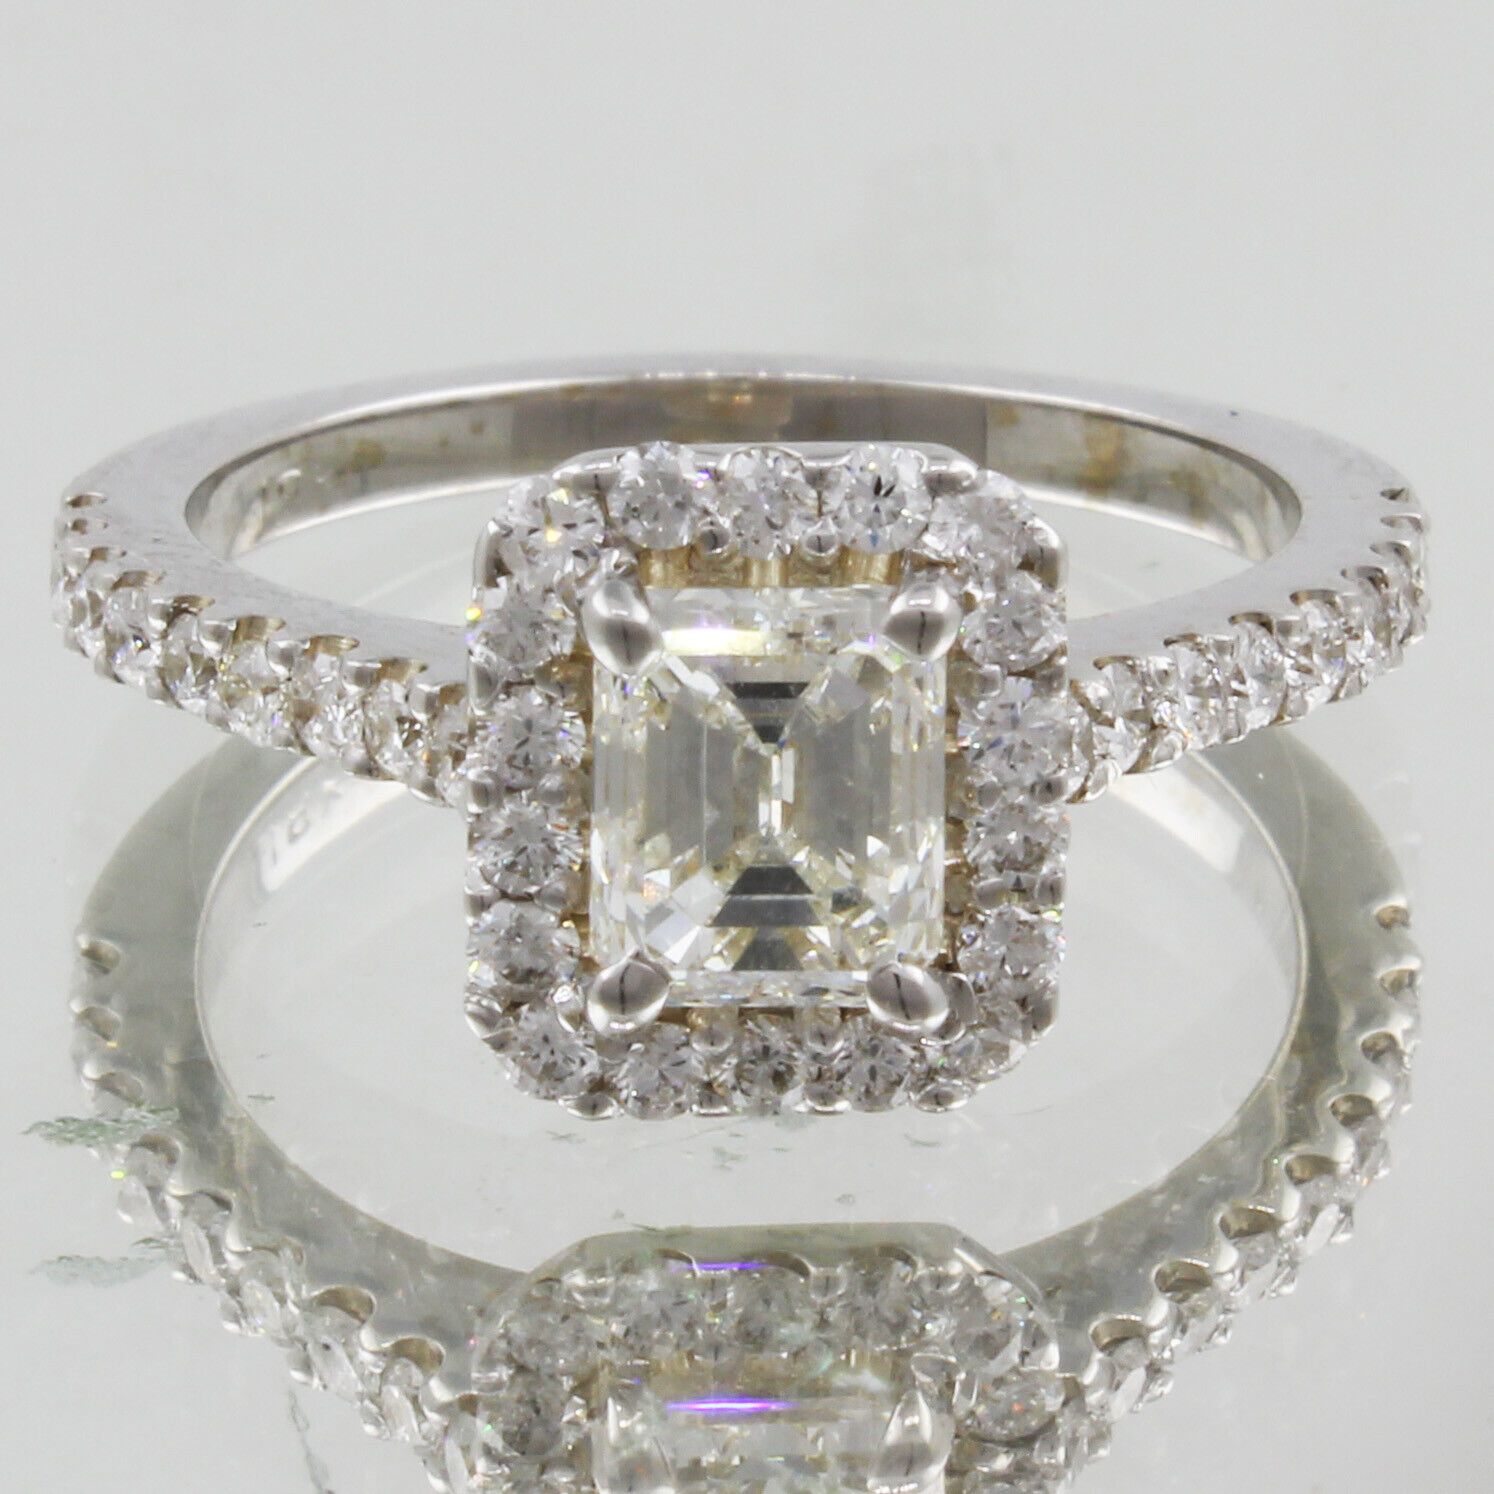 GIA Certified Diamond Engagement Halo Ring 2.13 CTW Emerald Cut  18k White Gold